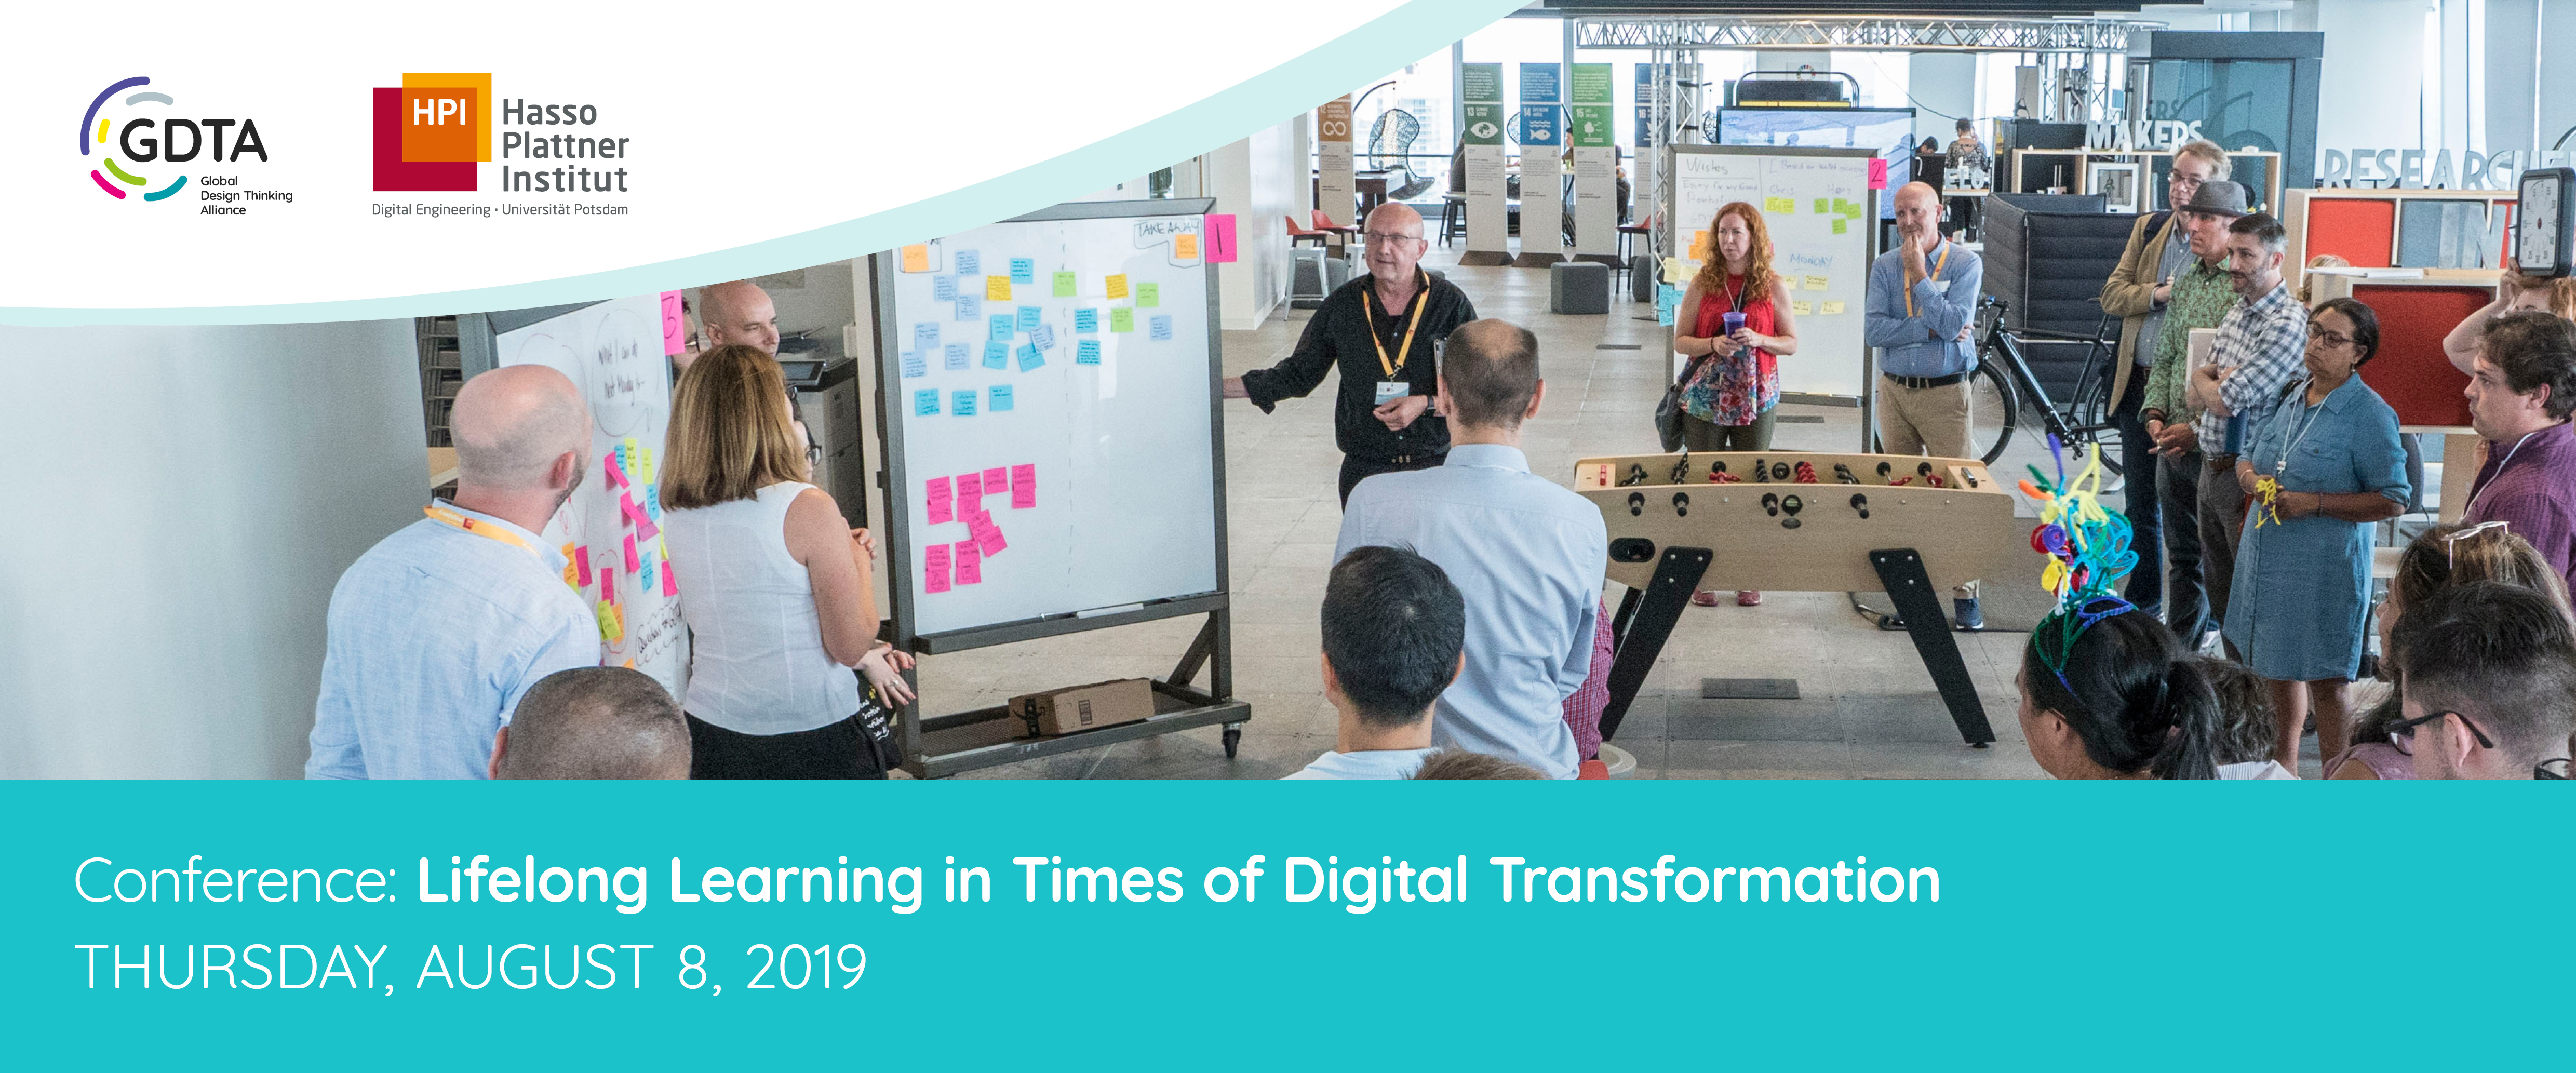 Lifelong learning conference 2019